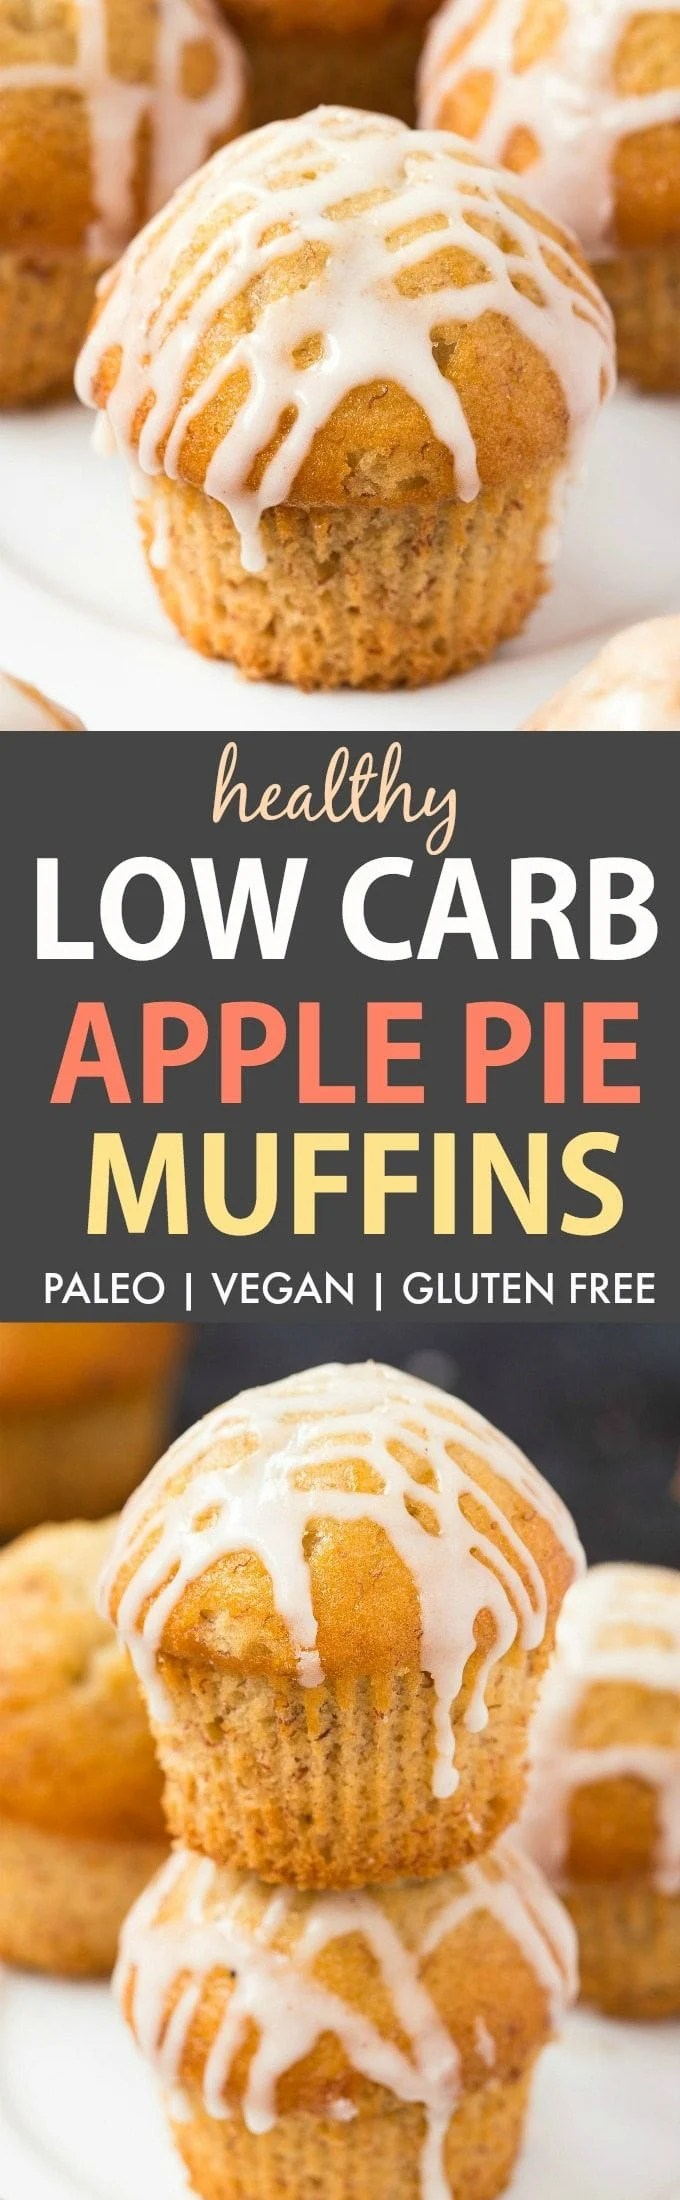 Low Carb Apple Pie Muffins (Paleo, Vegan, Gluten Free)- Healthy fluffy apple pie protein muffins which are accidentally low carb and made with NO eggs, NO sugar and NO grains- Perfect healthy baking! {v, gf, p recipe}- thebigmansworld.com